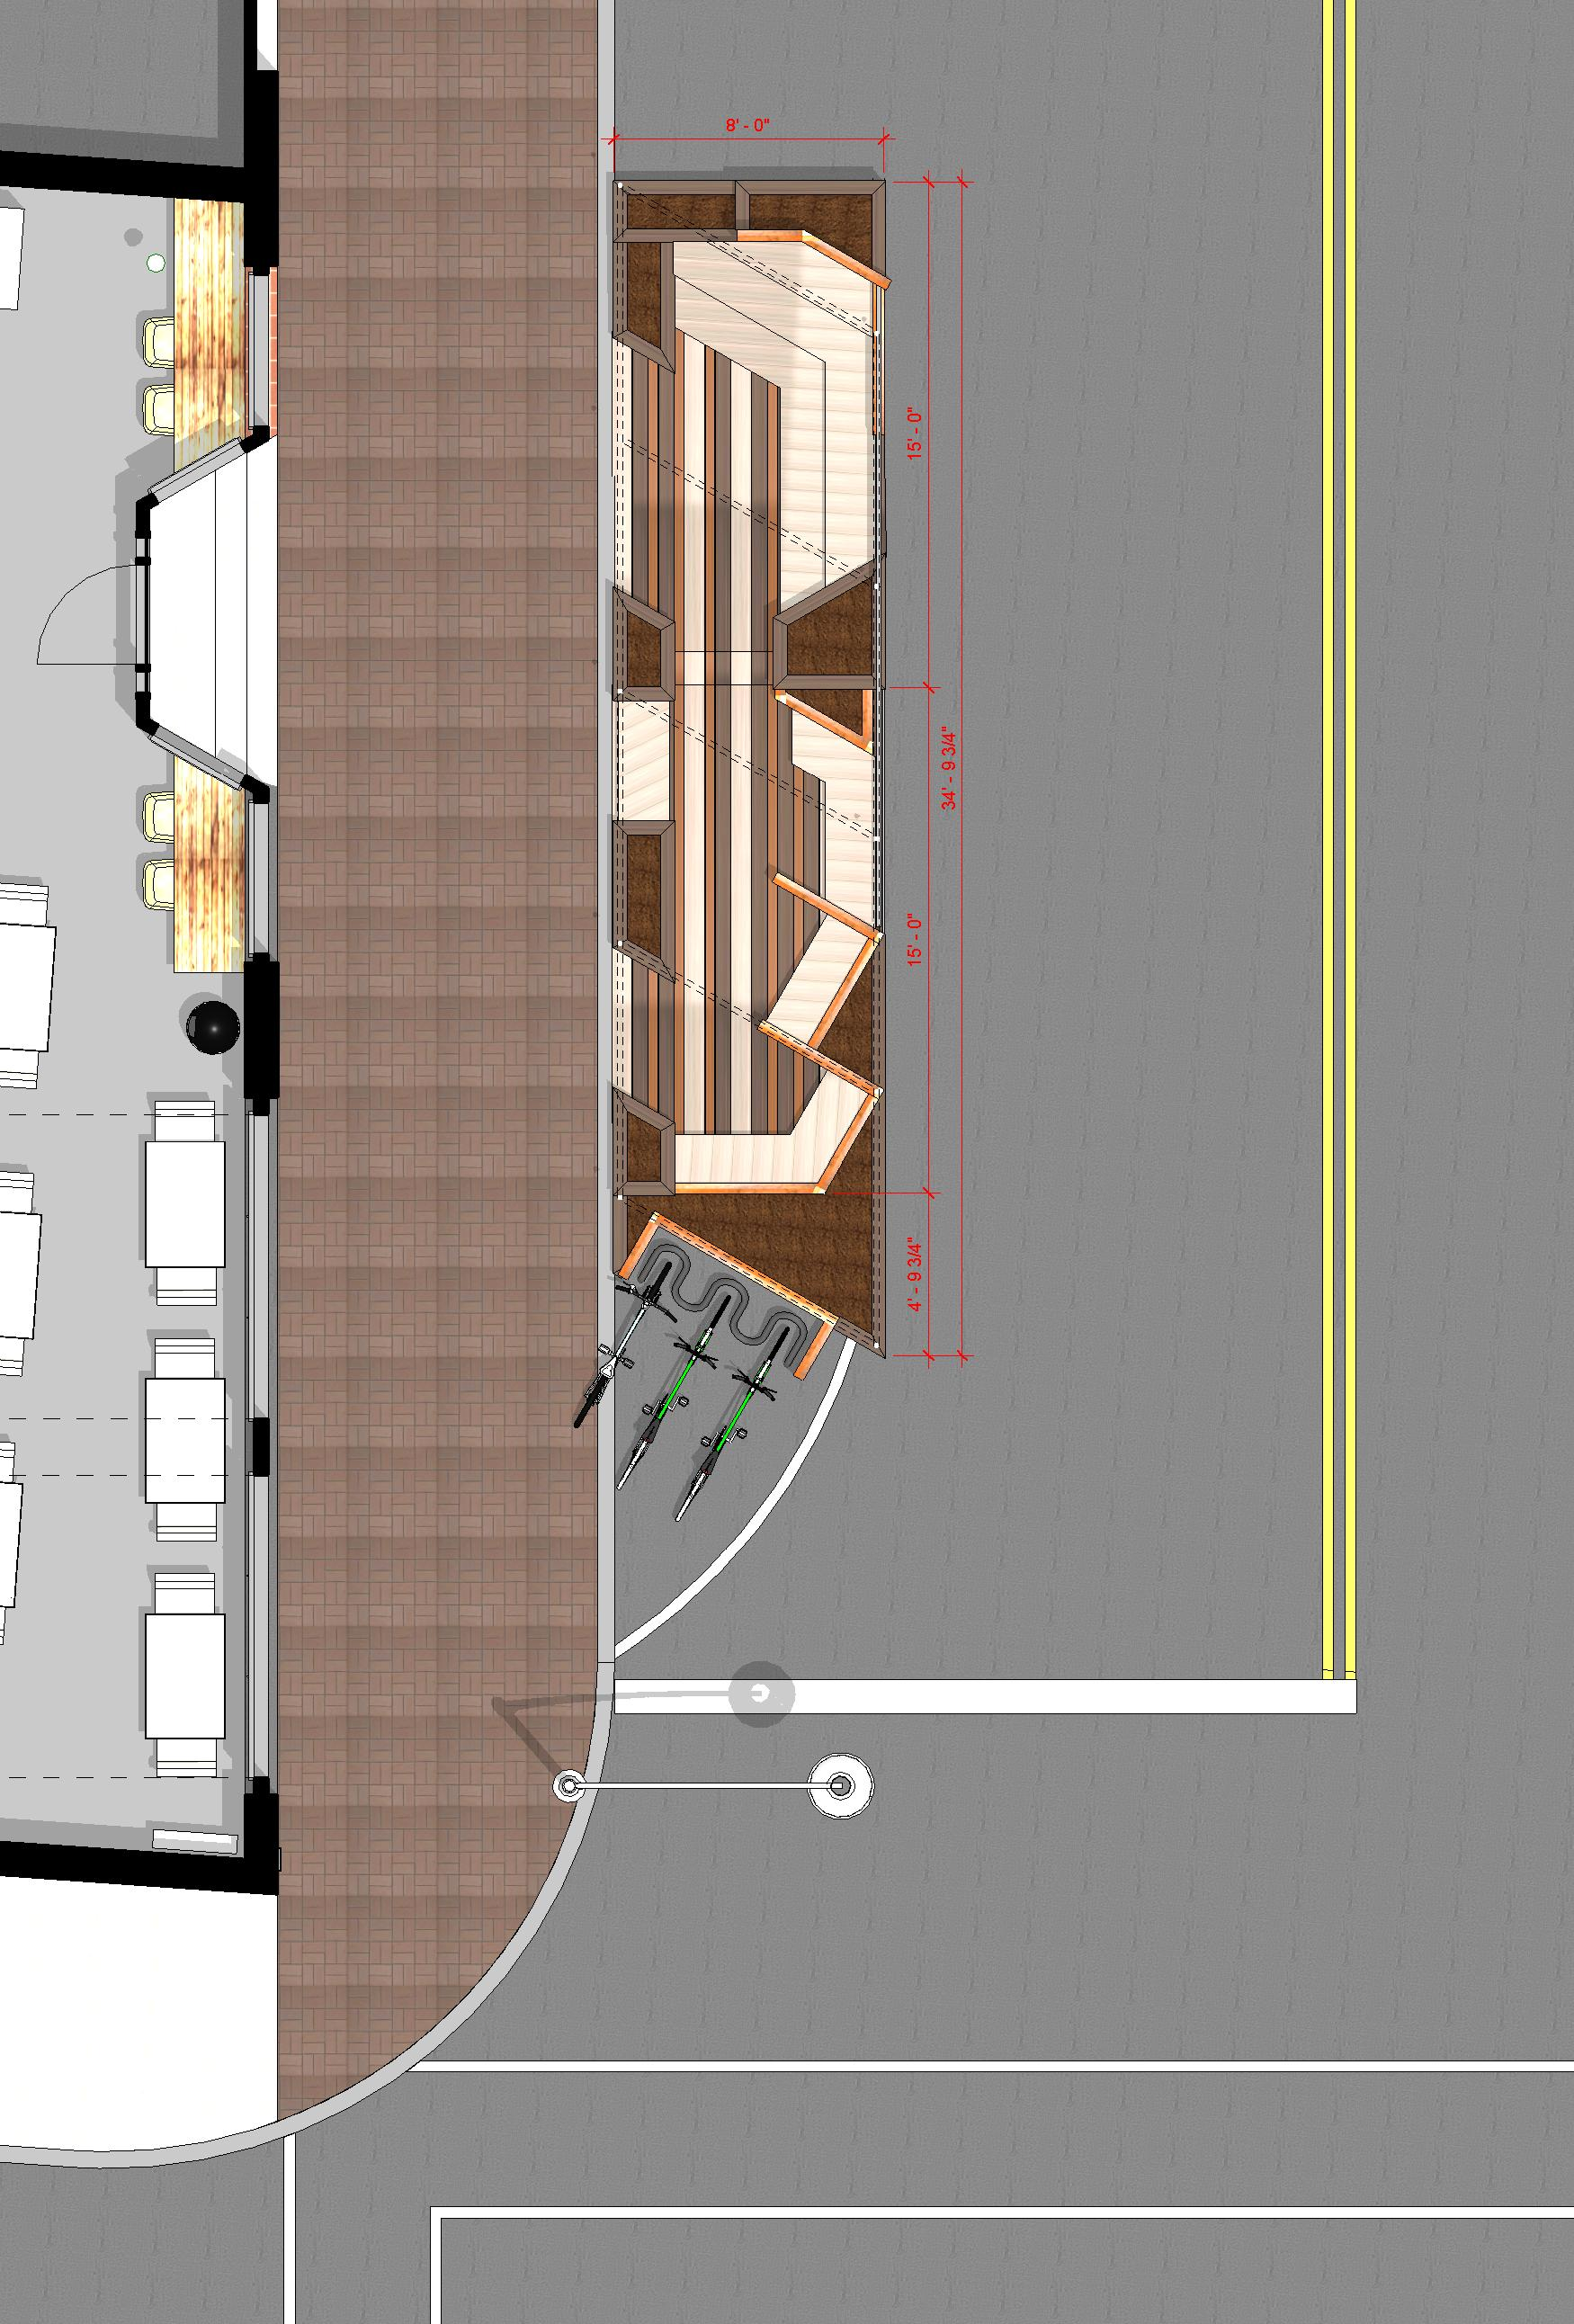 Parklet_ - Floor Plan - Level 1 - Parkle